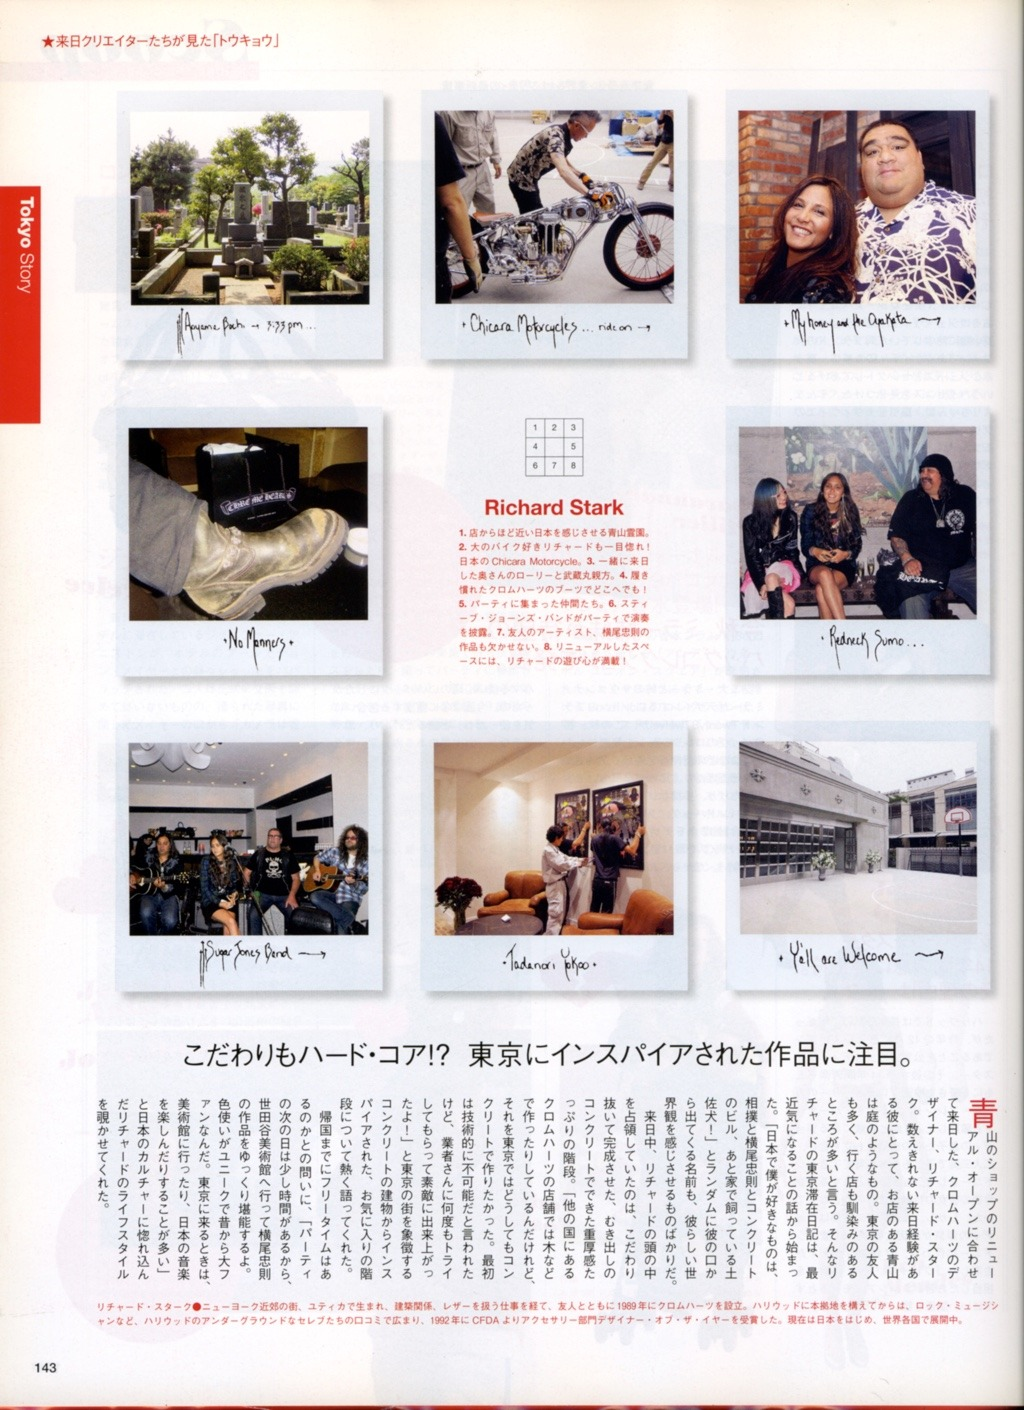 A photo of a page inside a Japanese issue of Vogue magazine.